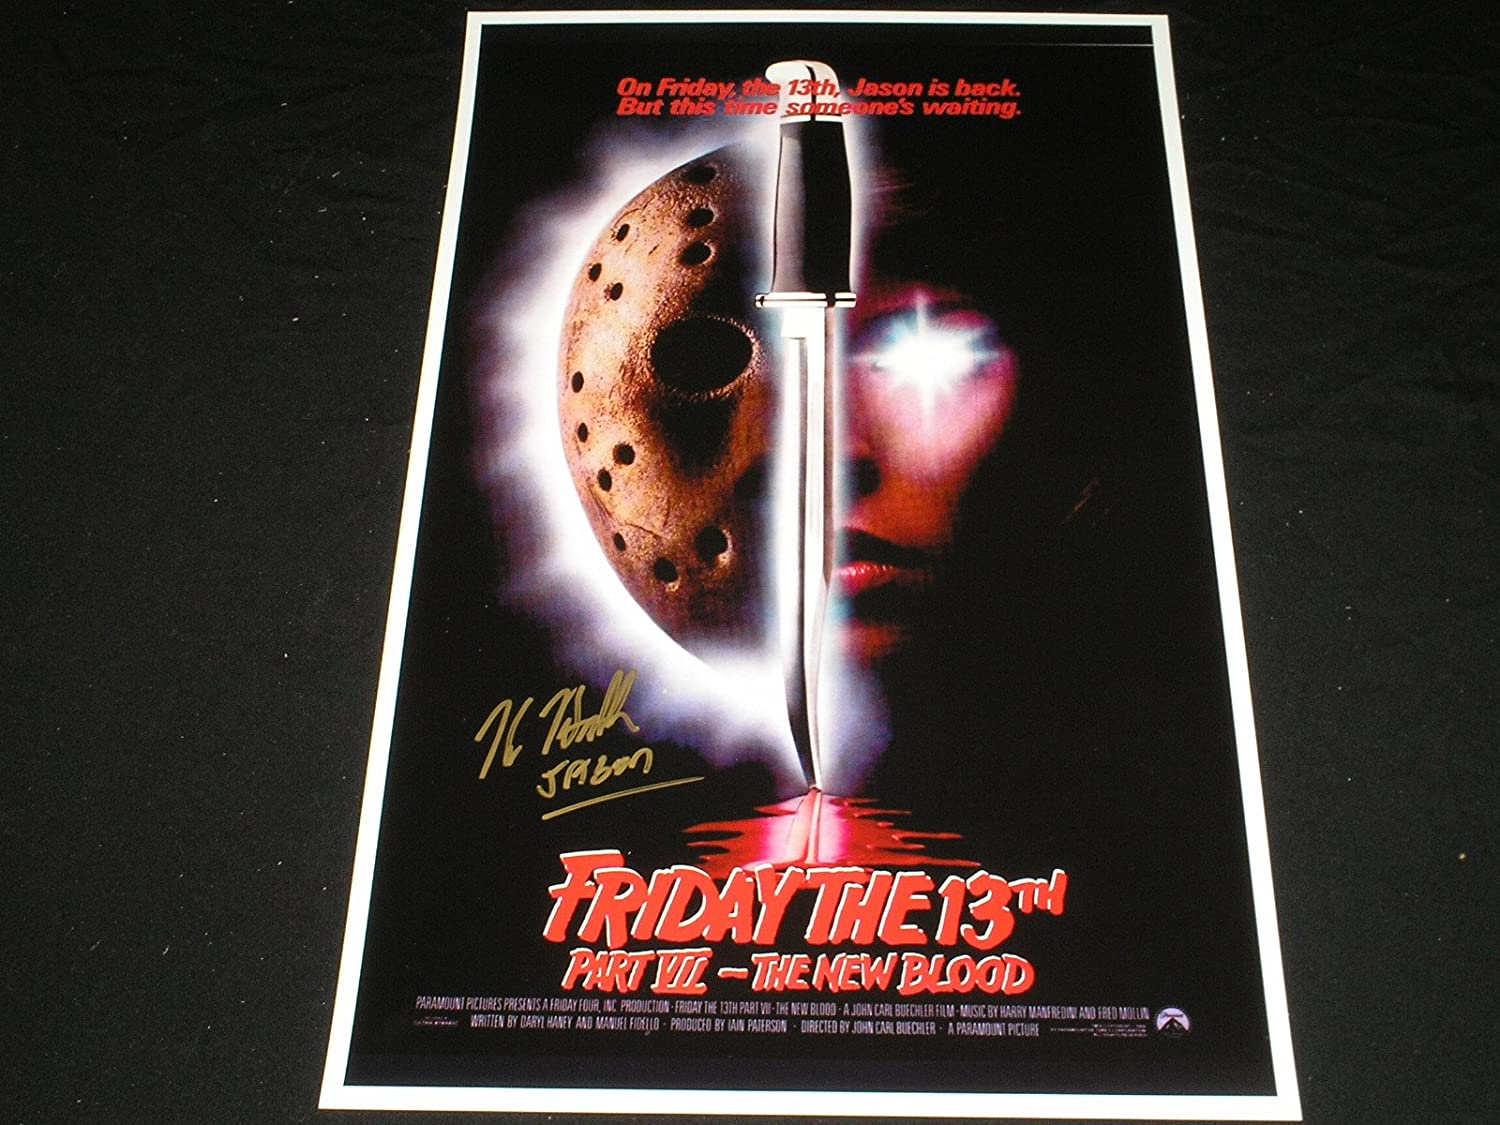 Kane Hodder Signed The New Blood 11x17 Poster Friday The 13th Part